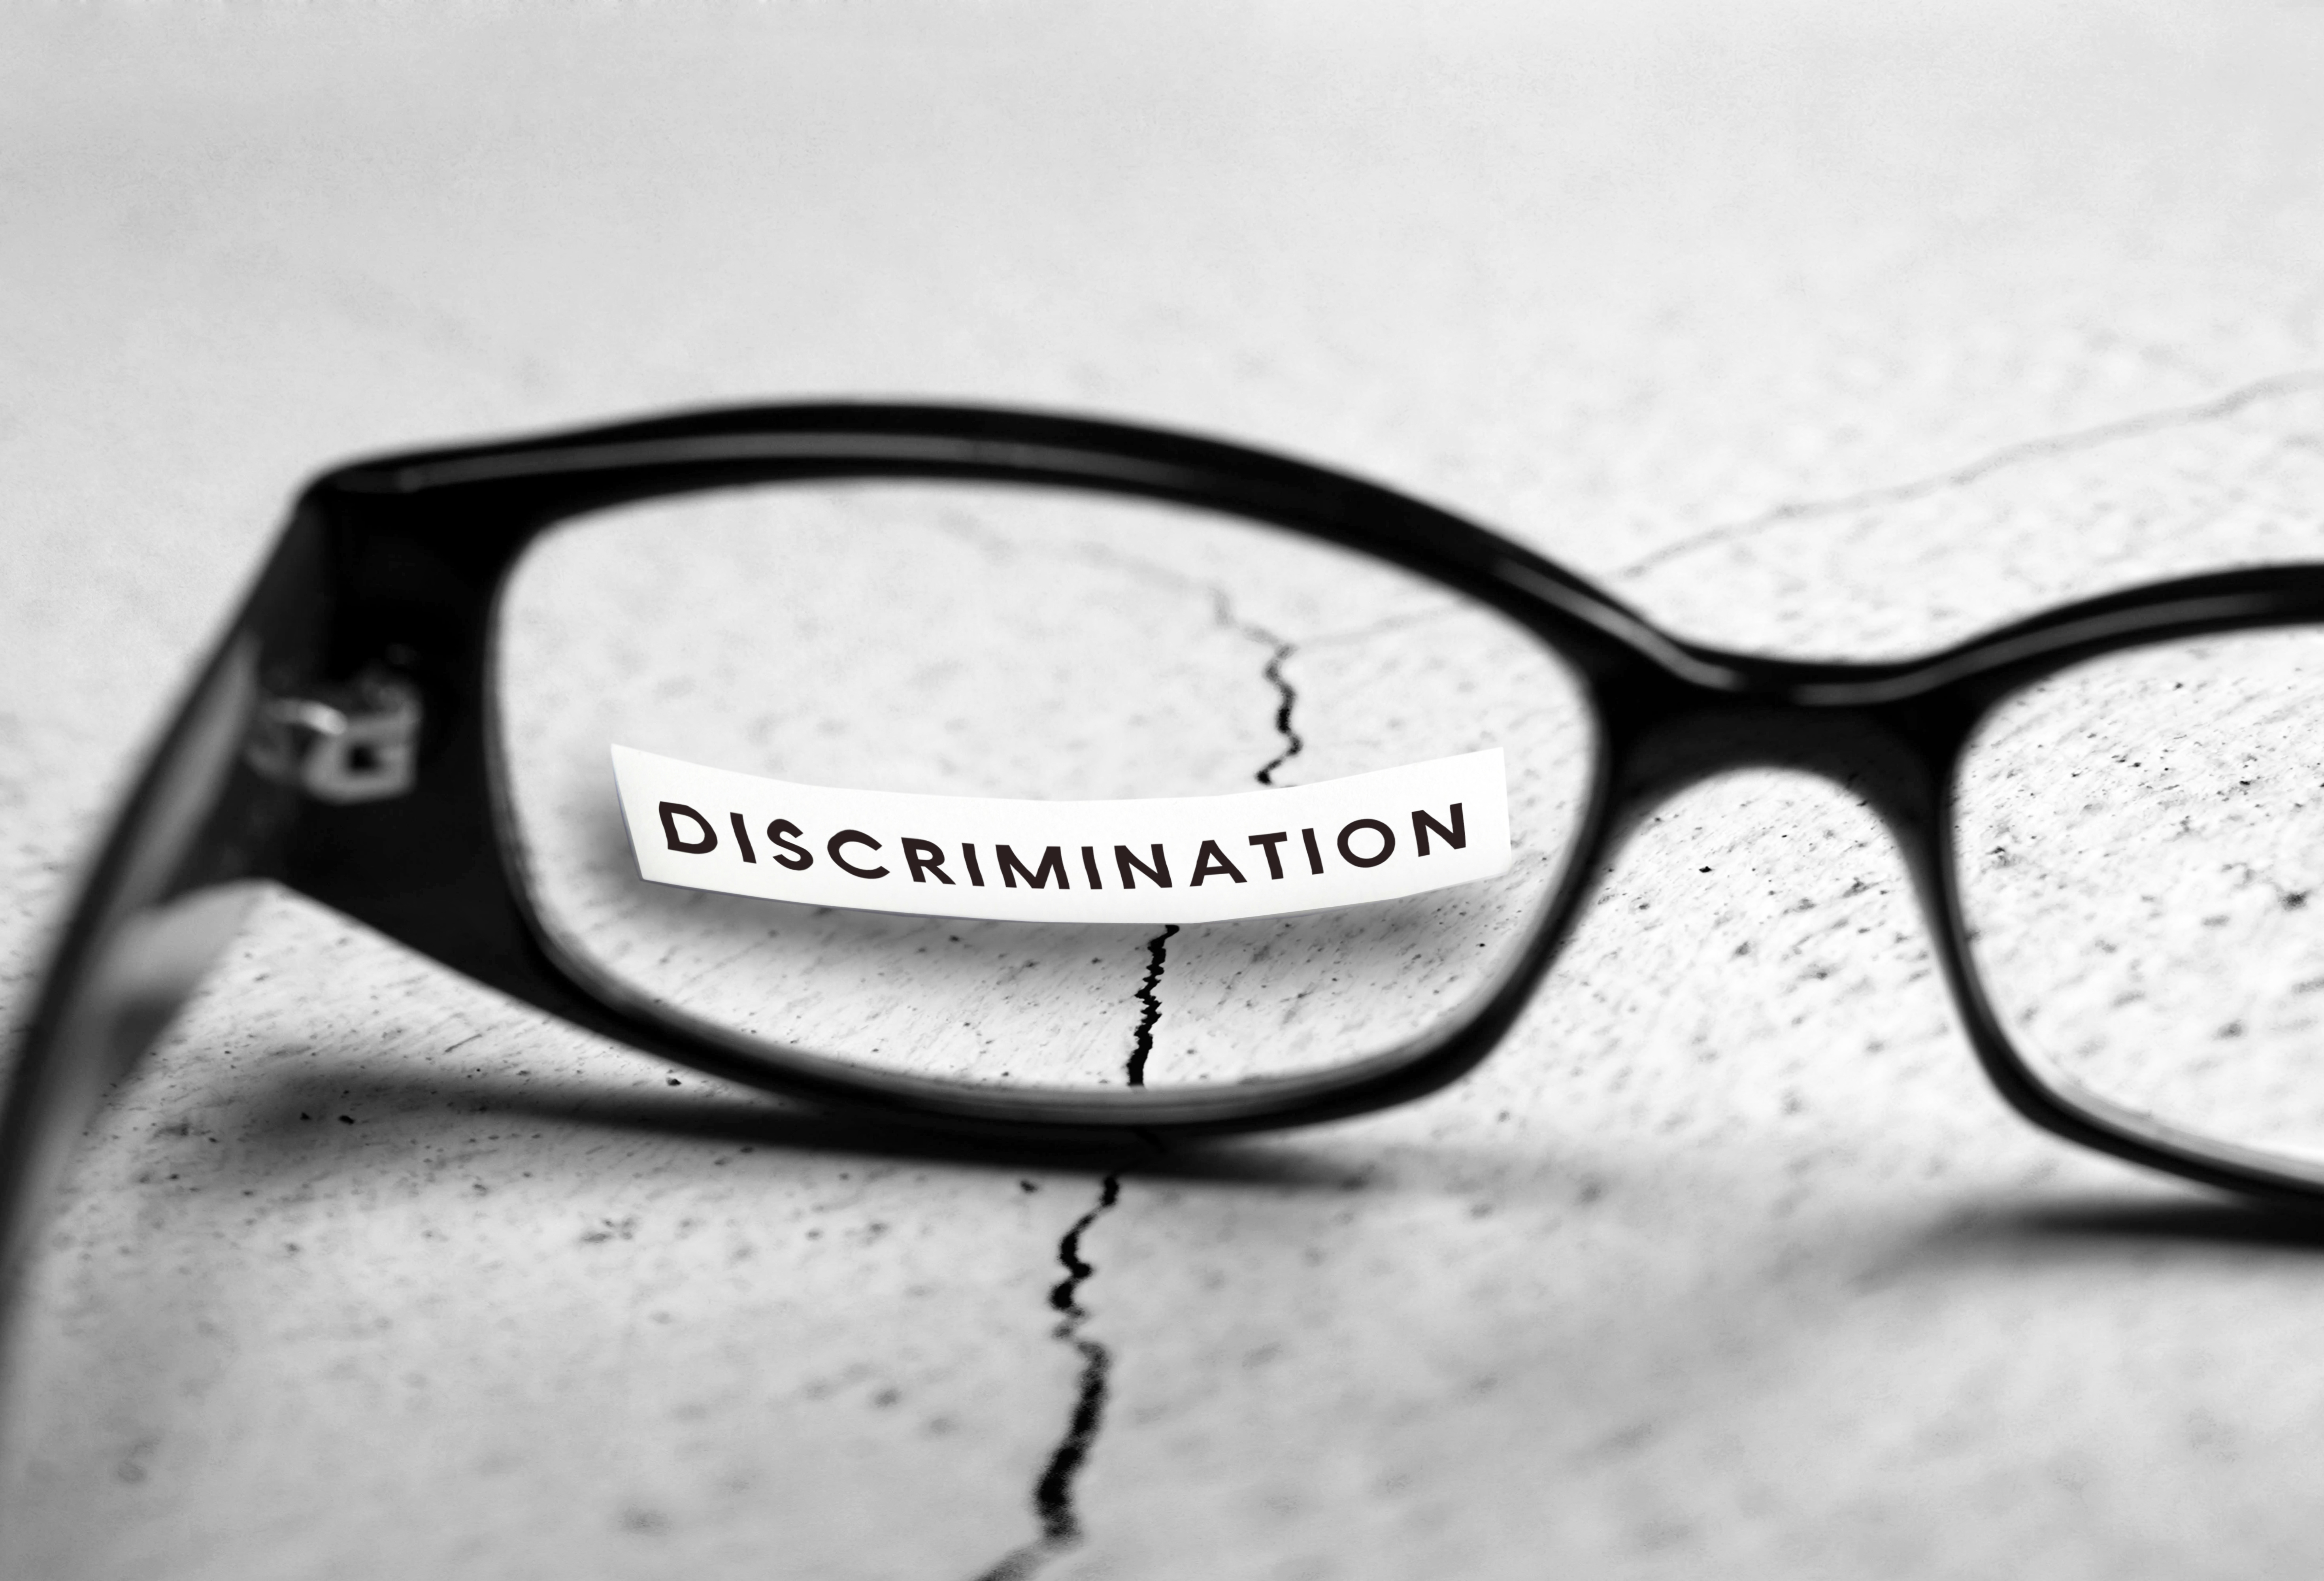 Three-quarters of Brits say age discrimination is common in their workplace